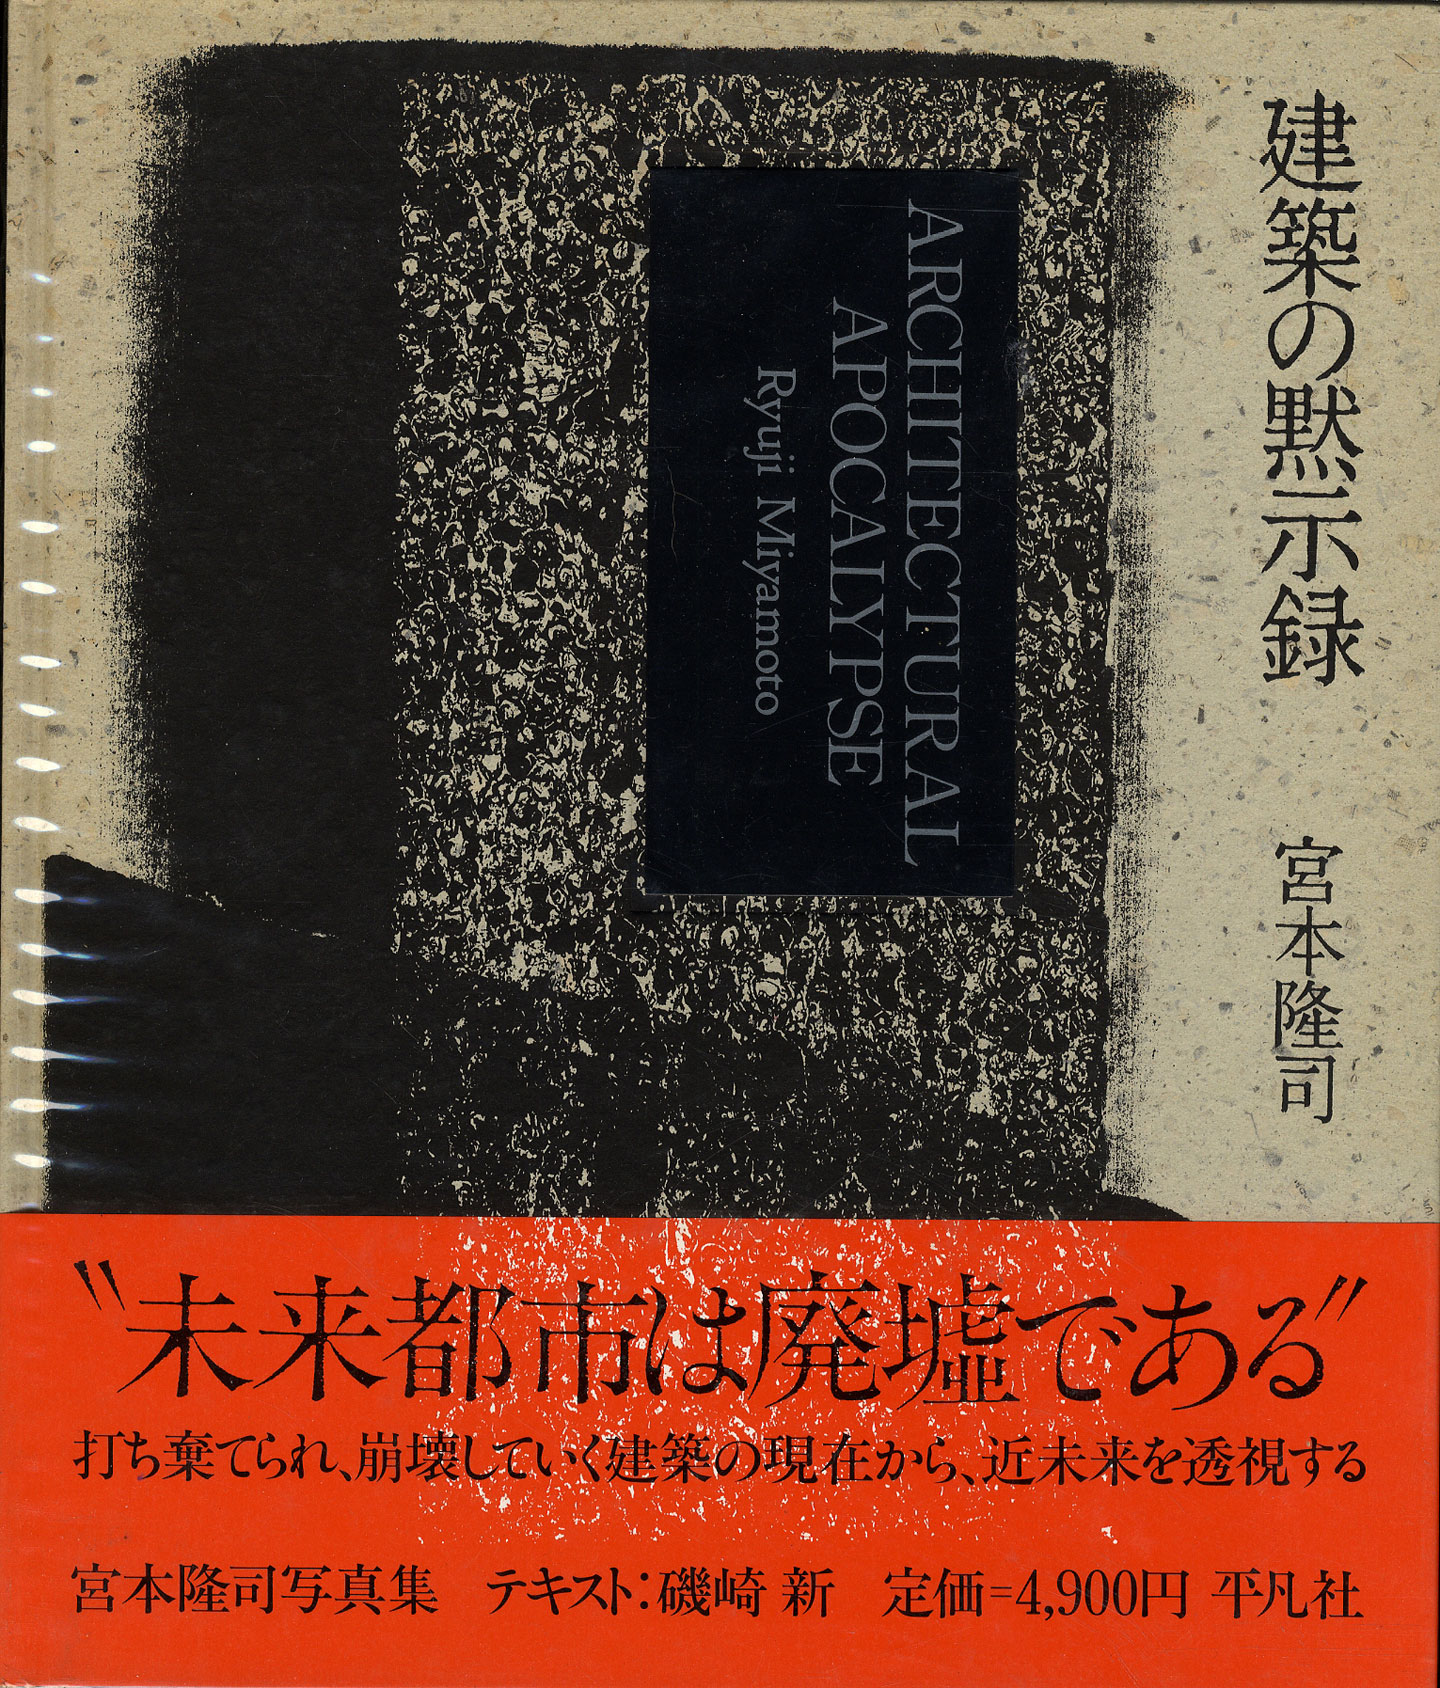 Ryuji Miyamoto: Architectural Apocalypse (First Edition with obi) [SIGNED]